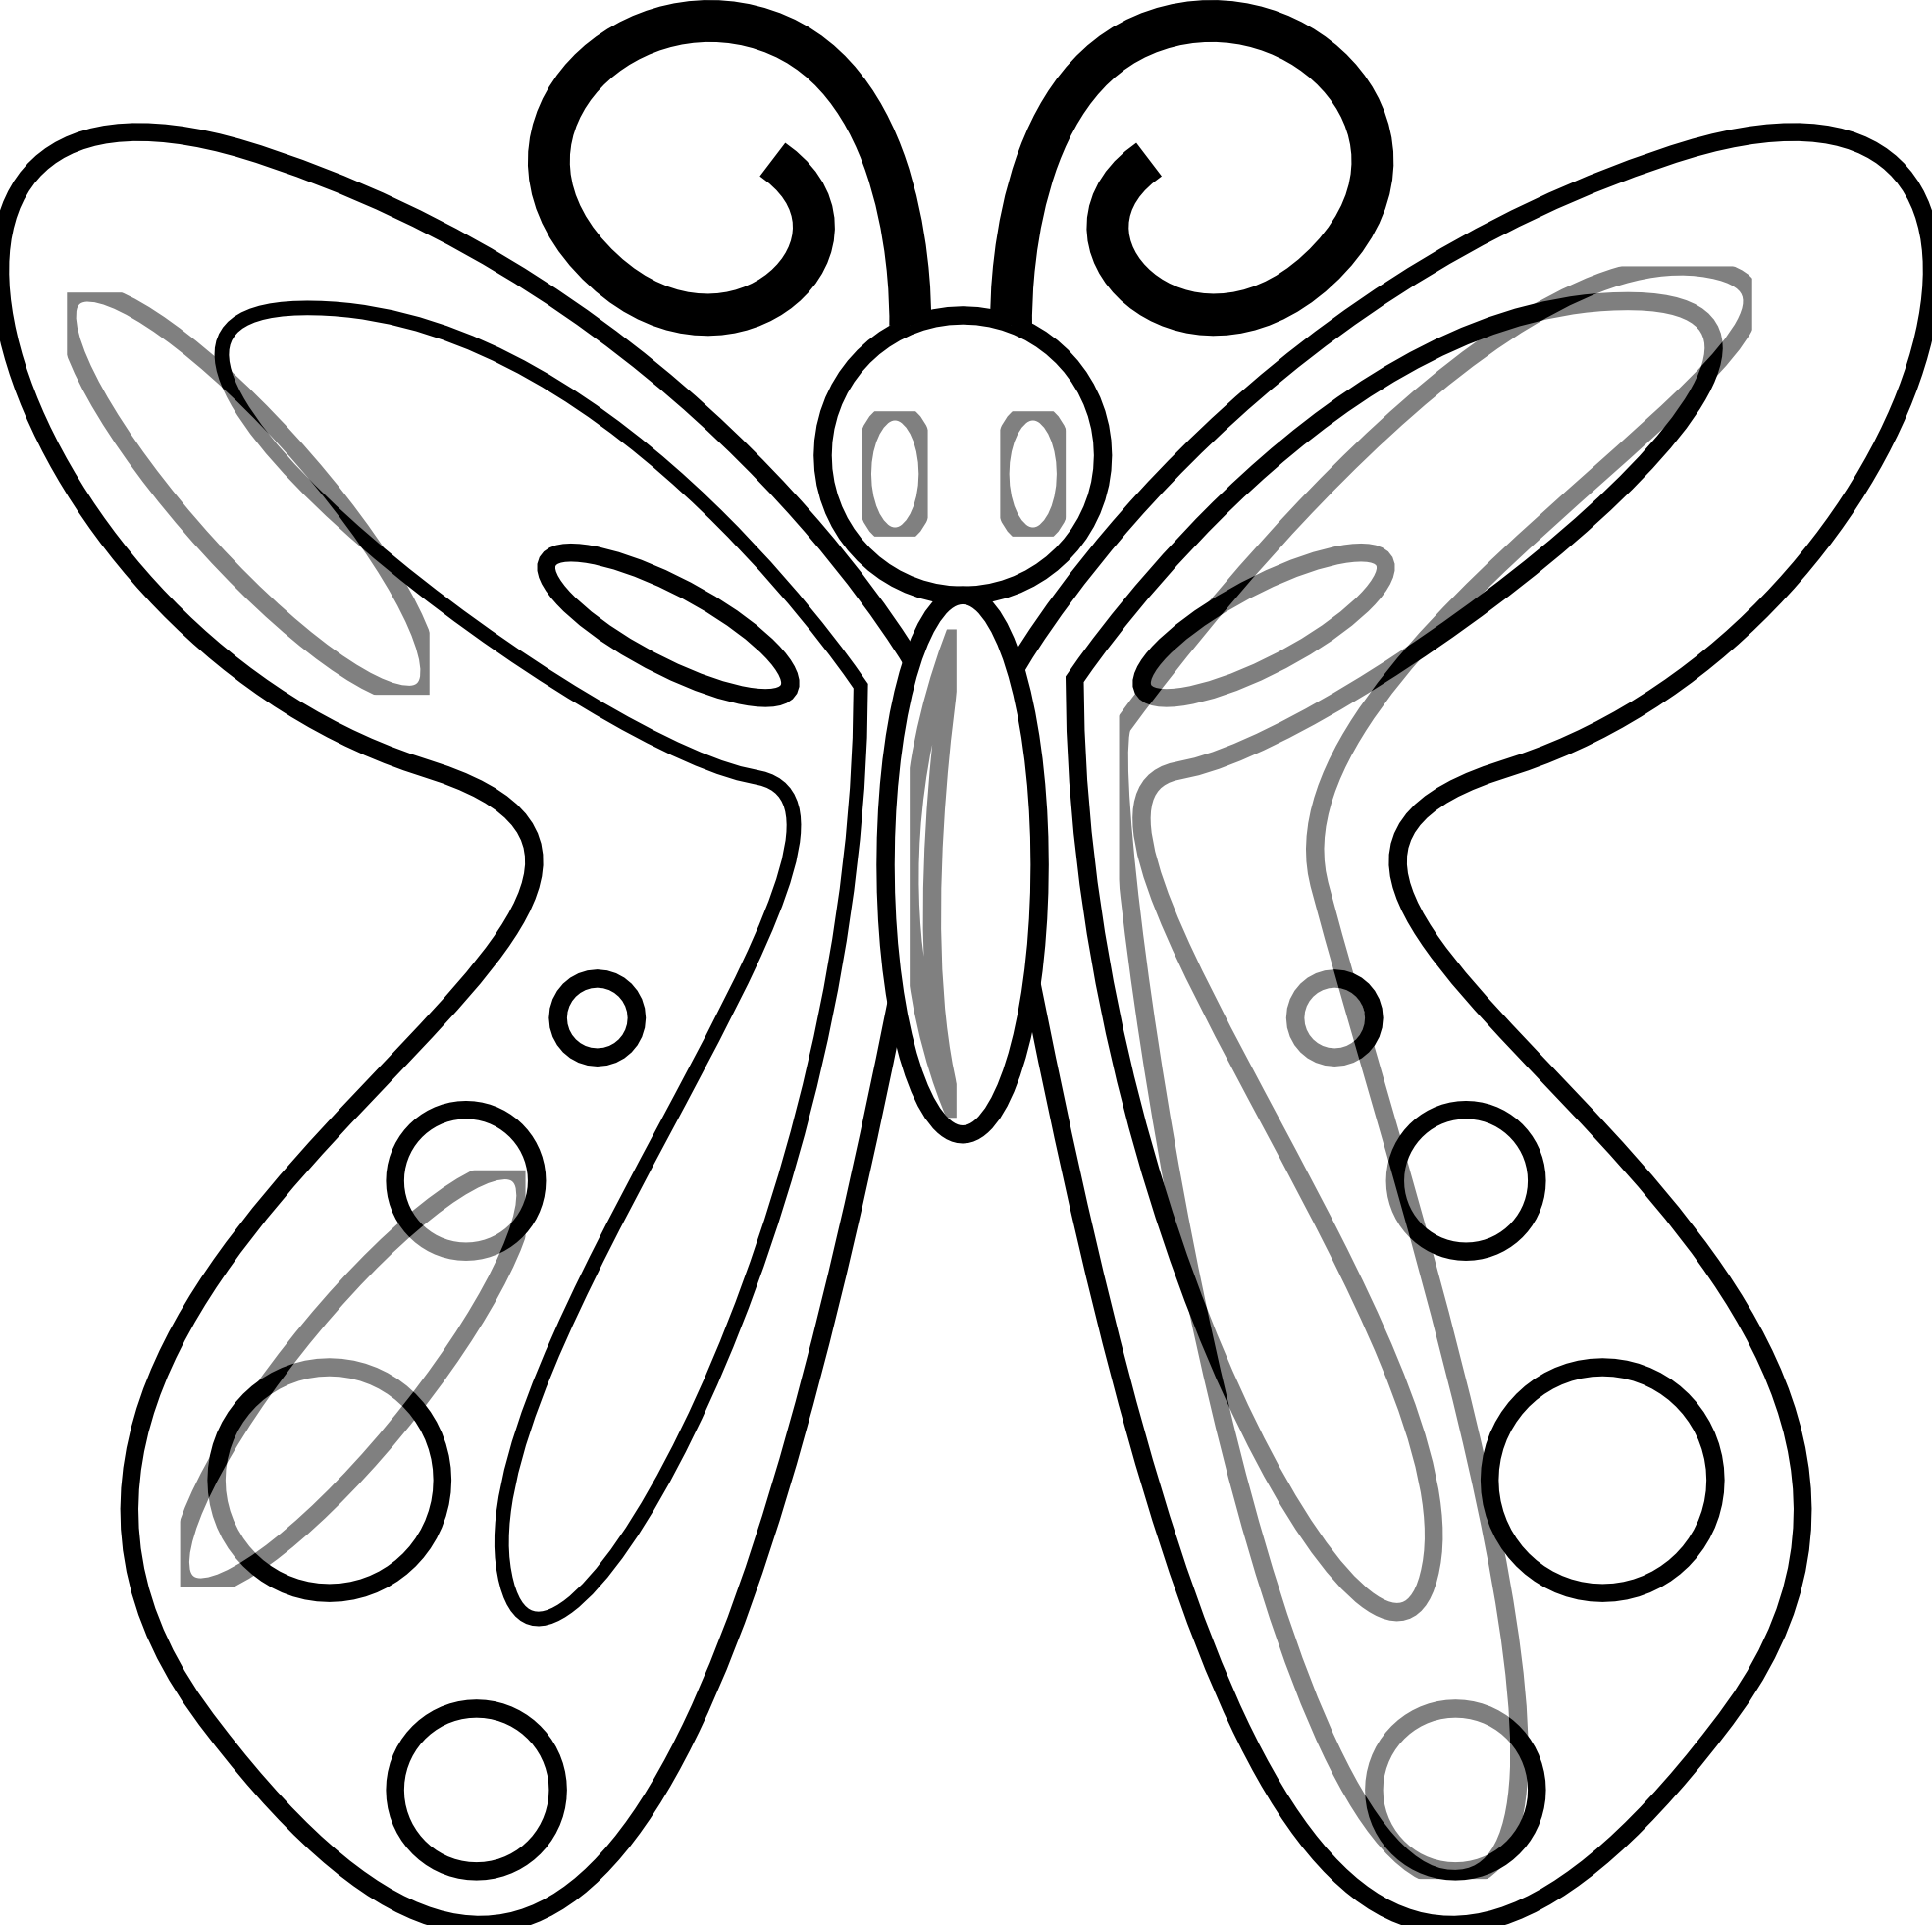 Drawing Vector Lines In Illustrator : Butterfly net drawing clipart panda free images